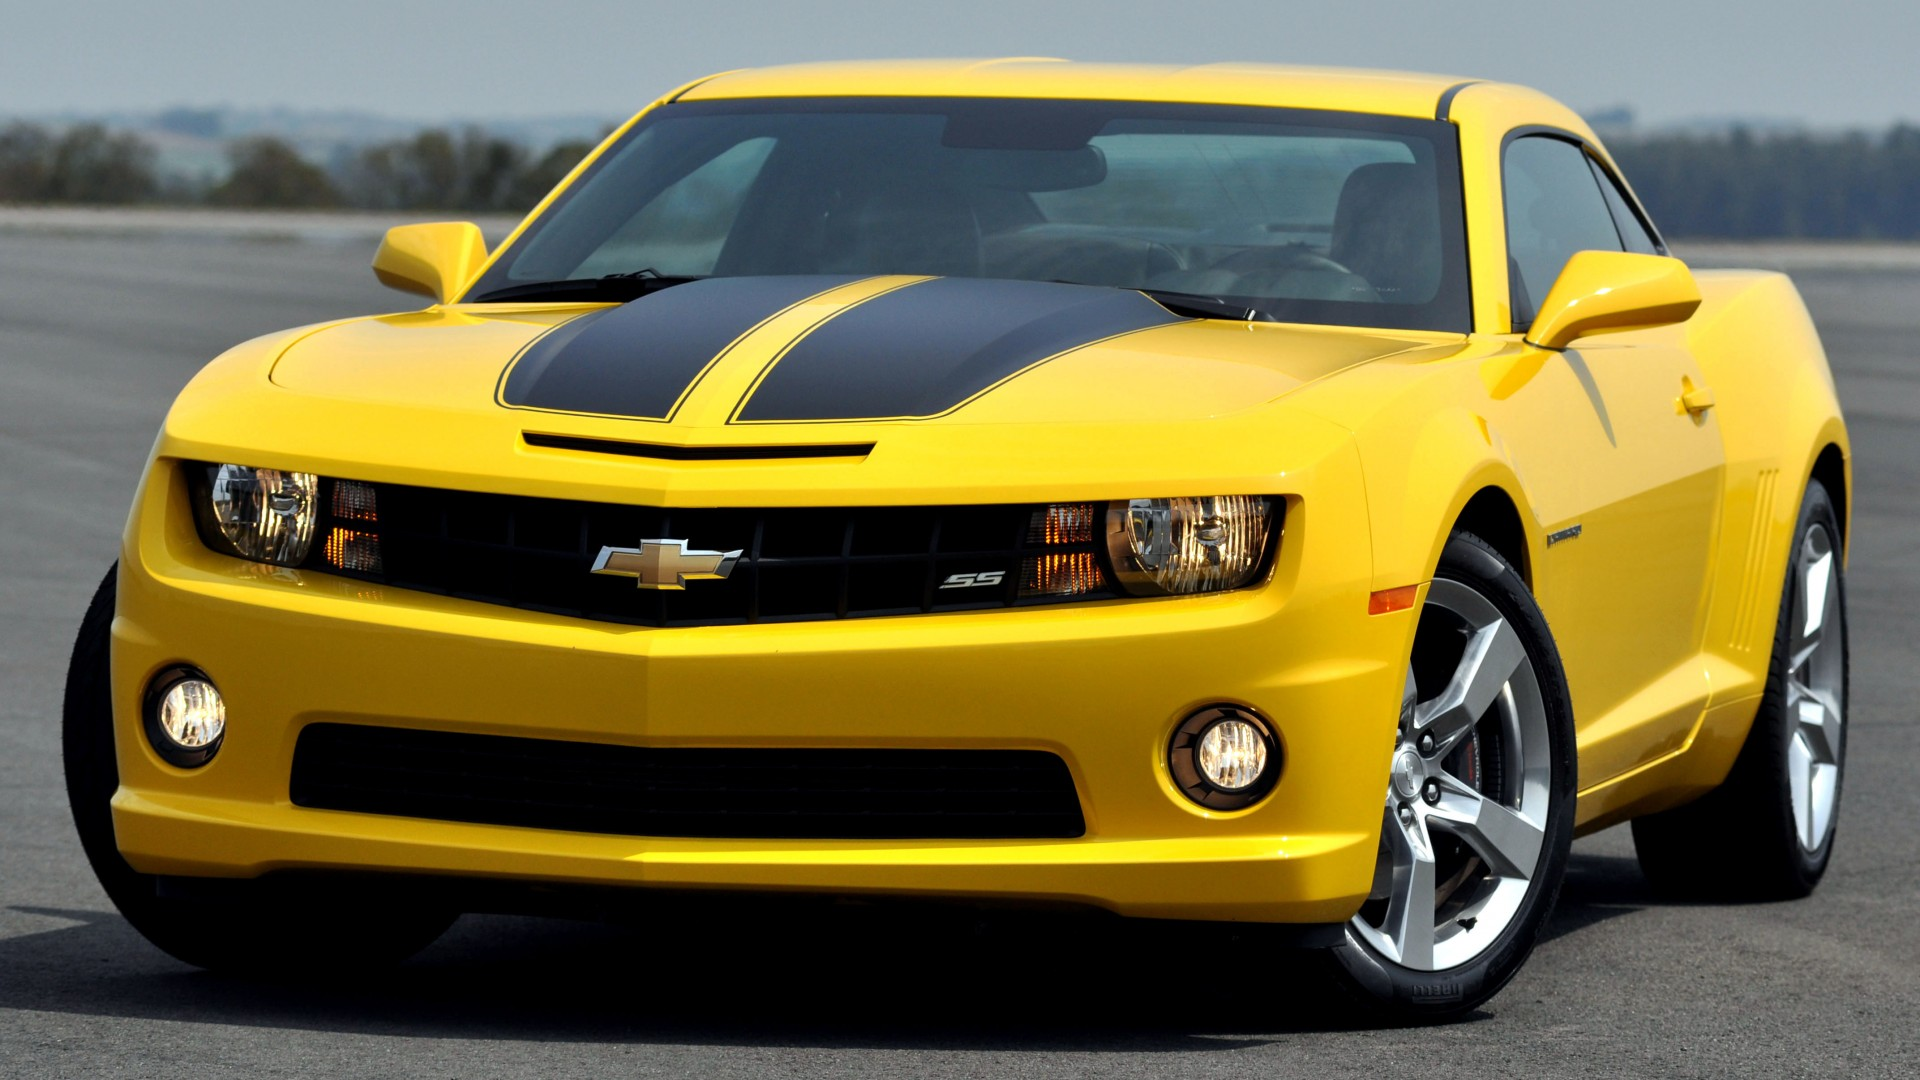 Chevrolet Camaro, muscle car, Transformers, Special Edition, Camaro, sports car, Chevy, Camaro SS, V8, review, test drive, speed, buy, rent, yellow, front (horizontal)